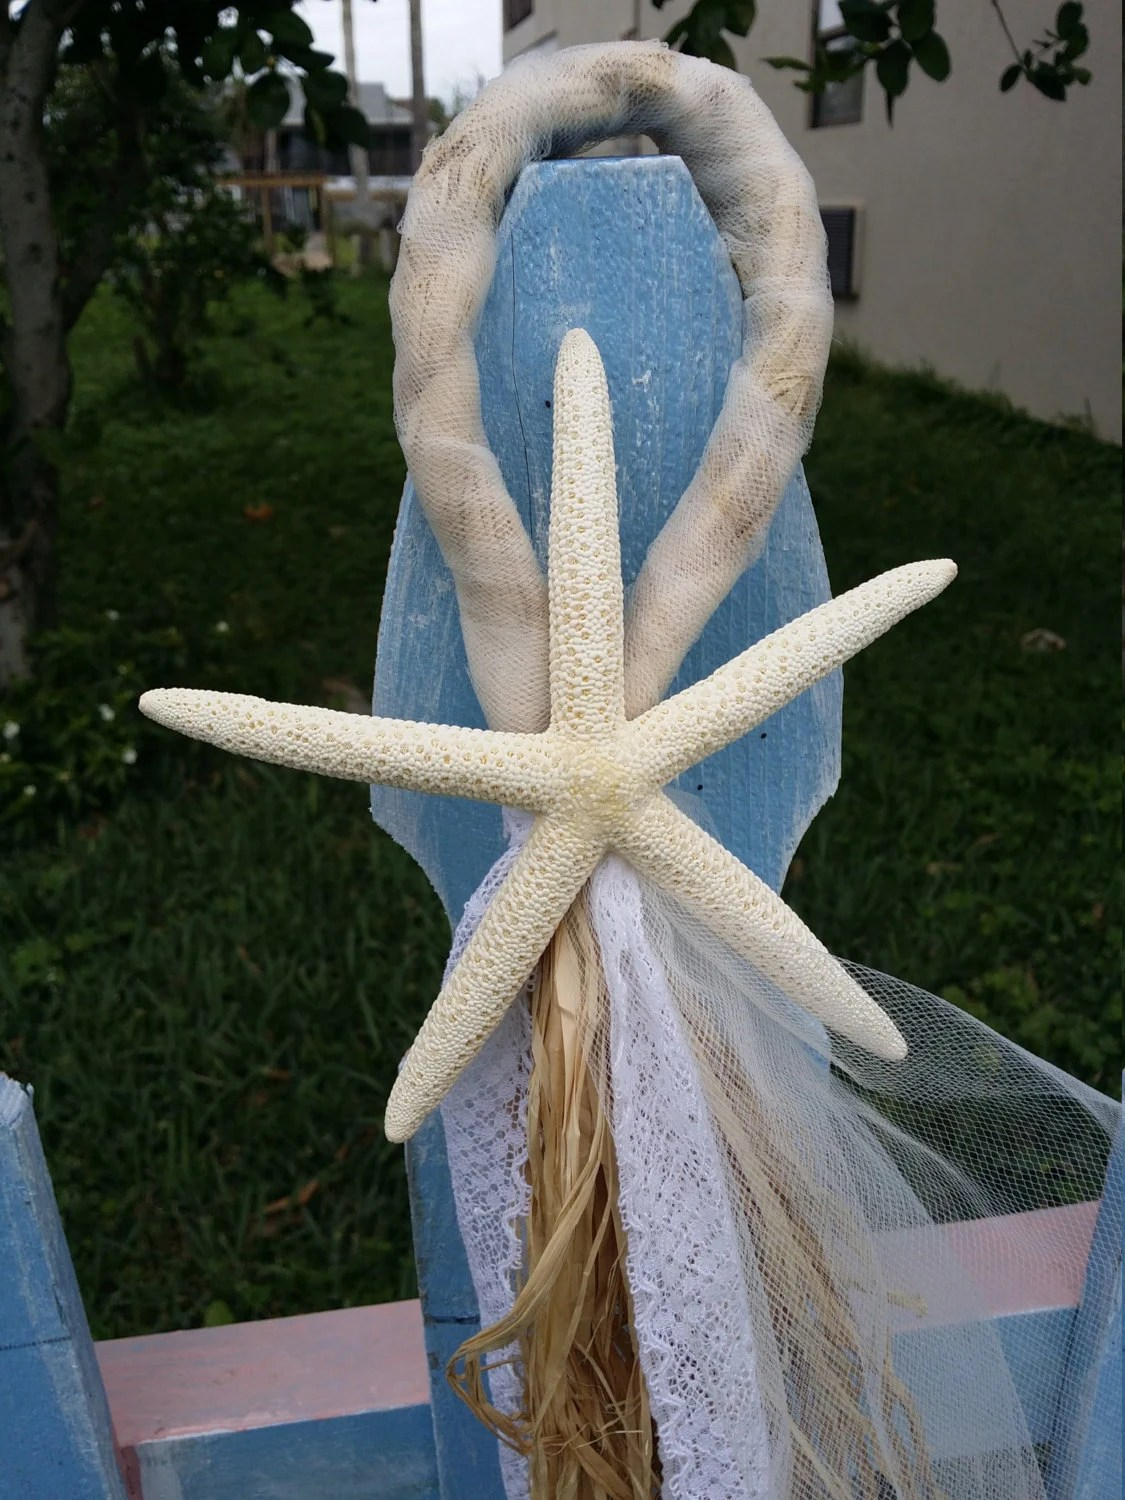 starfish wedding chair decorations cheap covers and sashes raffia strawtulle lace nautical beach aisle